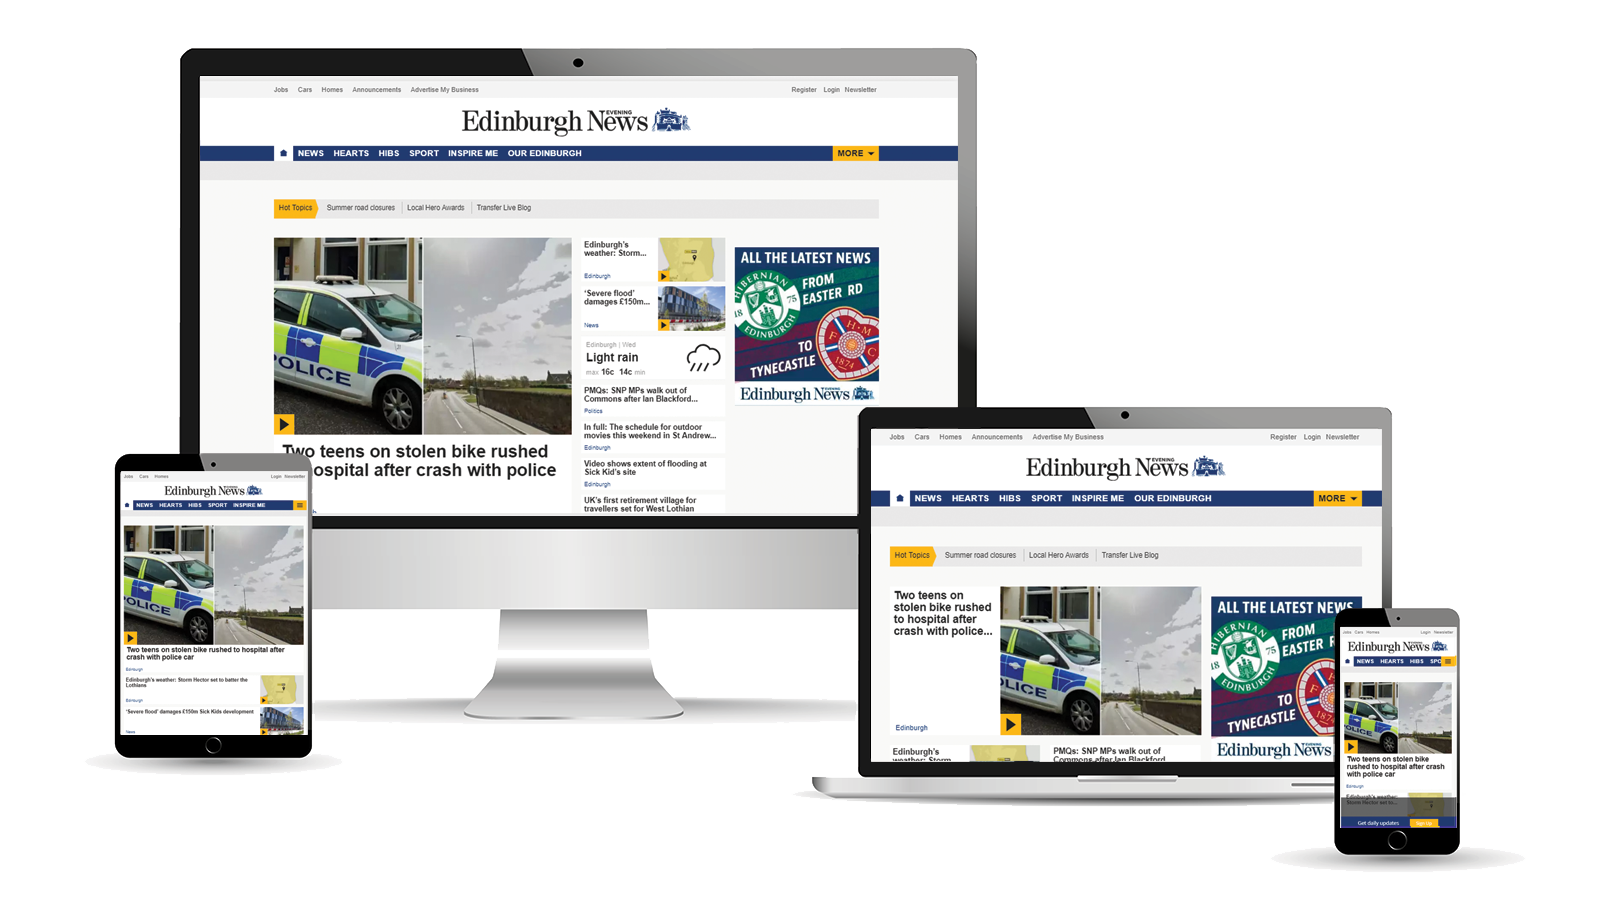 Advertise across desktop, tablet and mobile with The Edinburgh Evening News